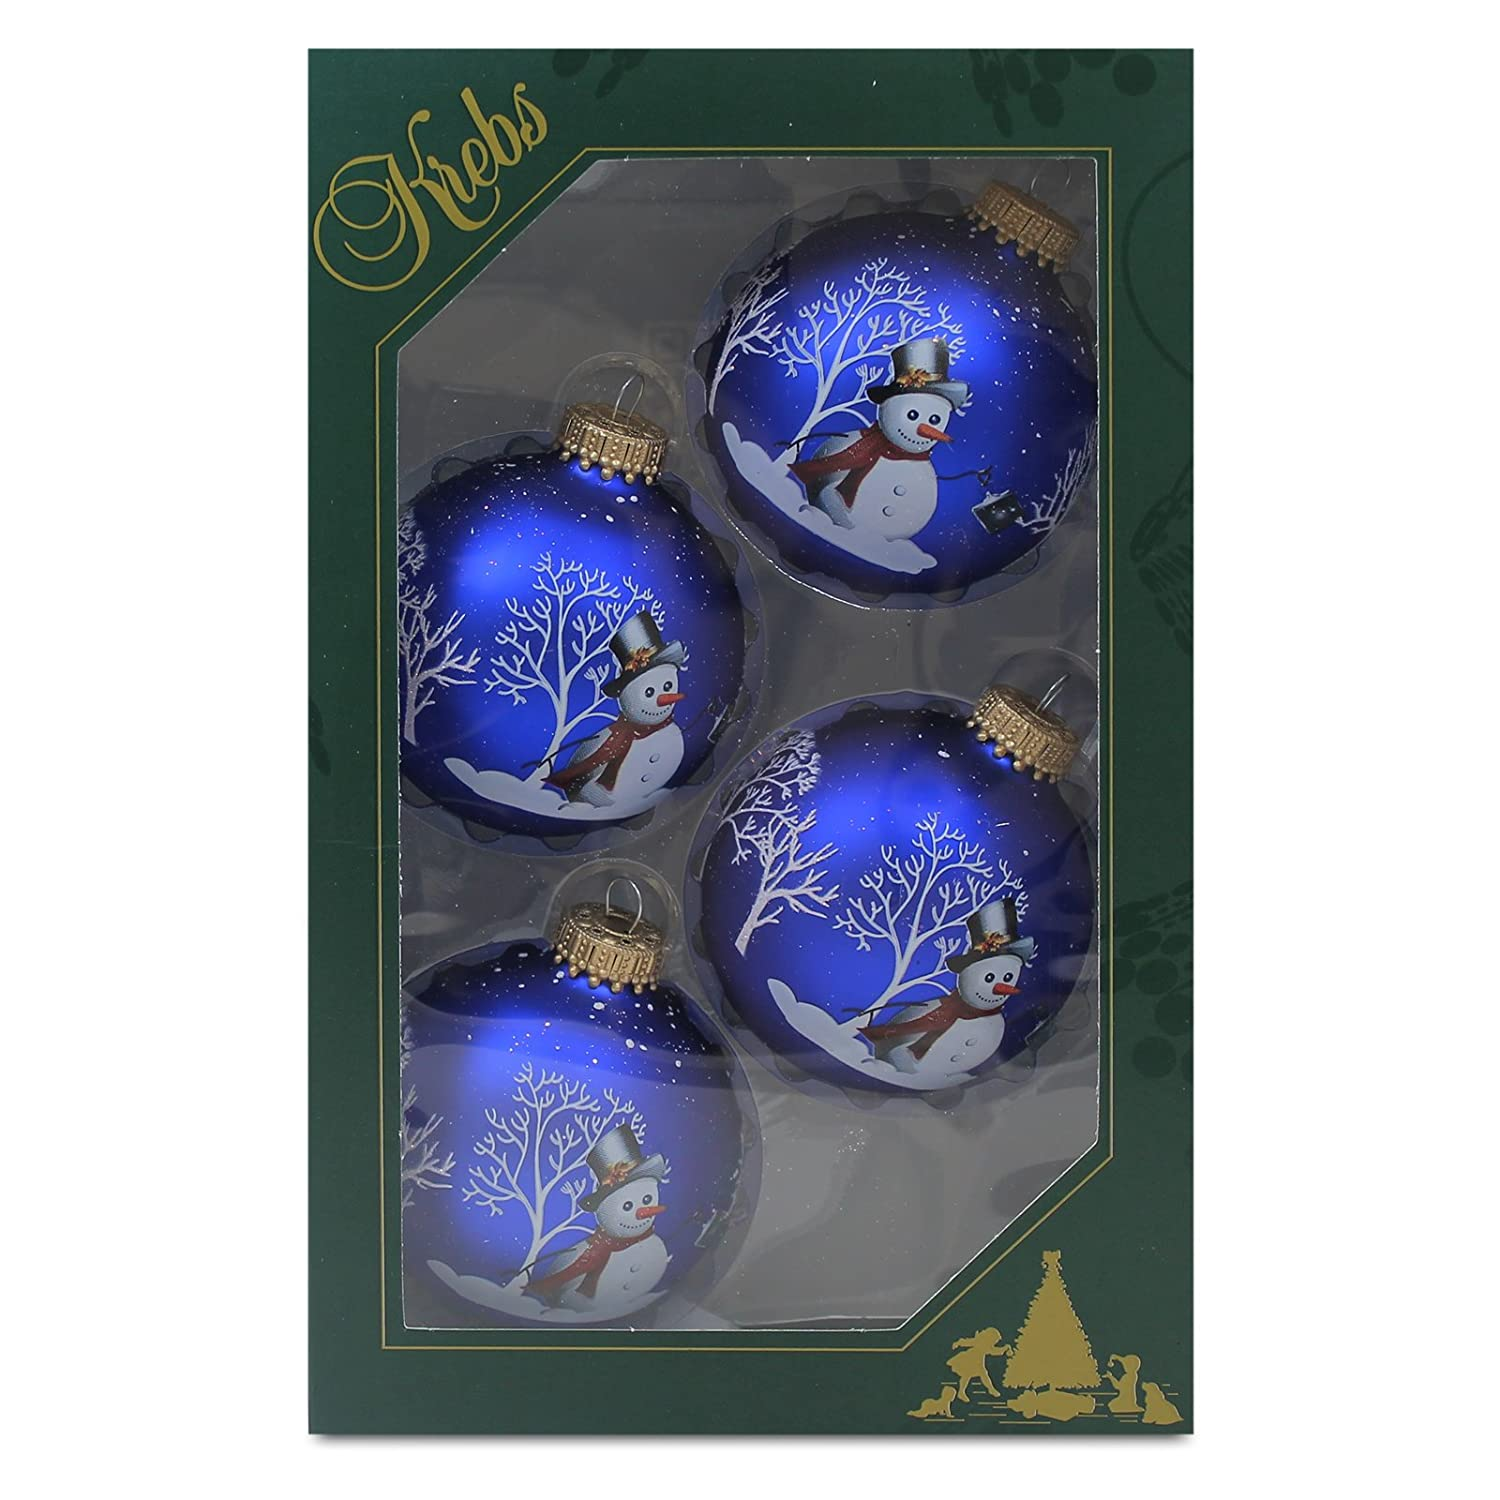 Christmas Royal Velvet Snowman Ornament - Set of 4